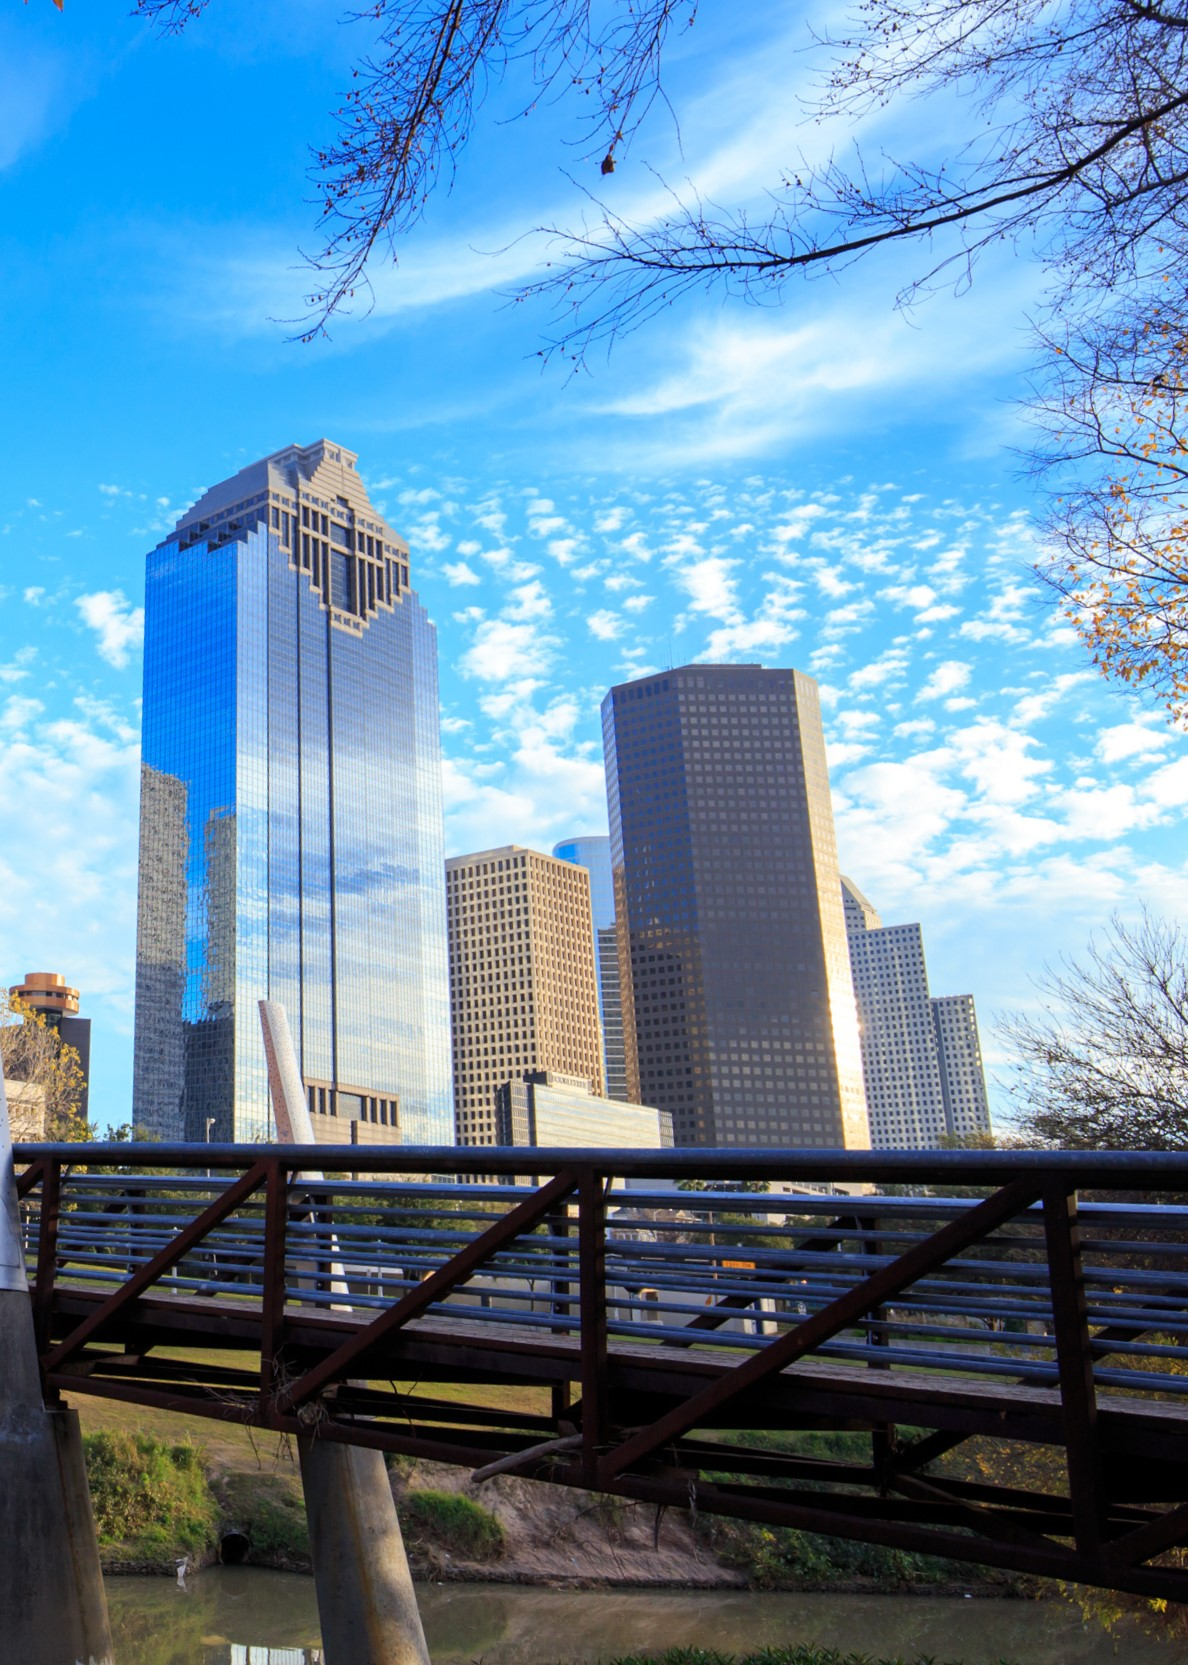 Houston Texas Skyline with modern skyscrapers and blue sky view from park